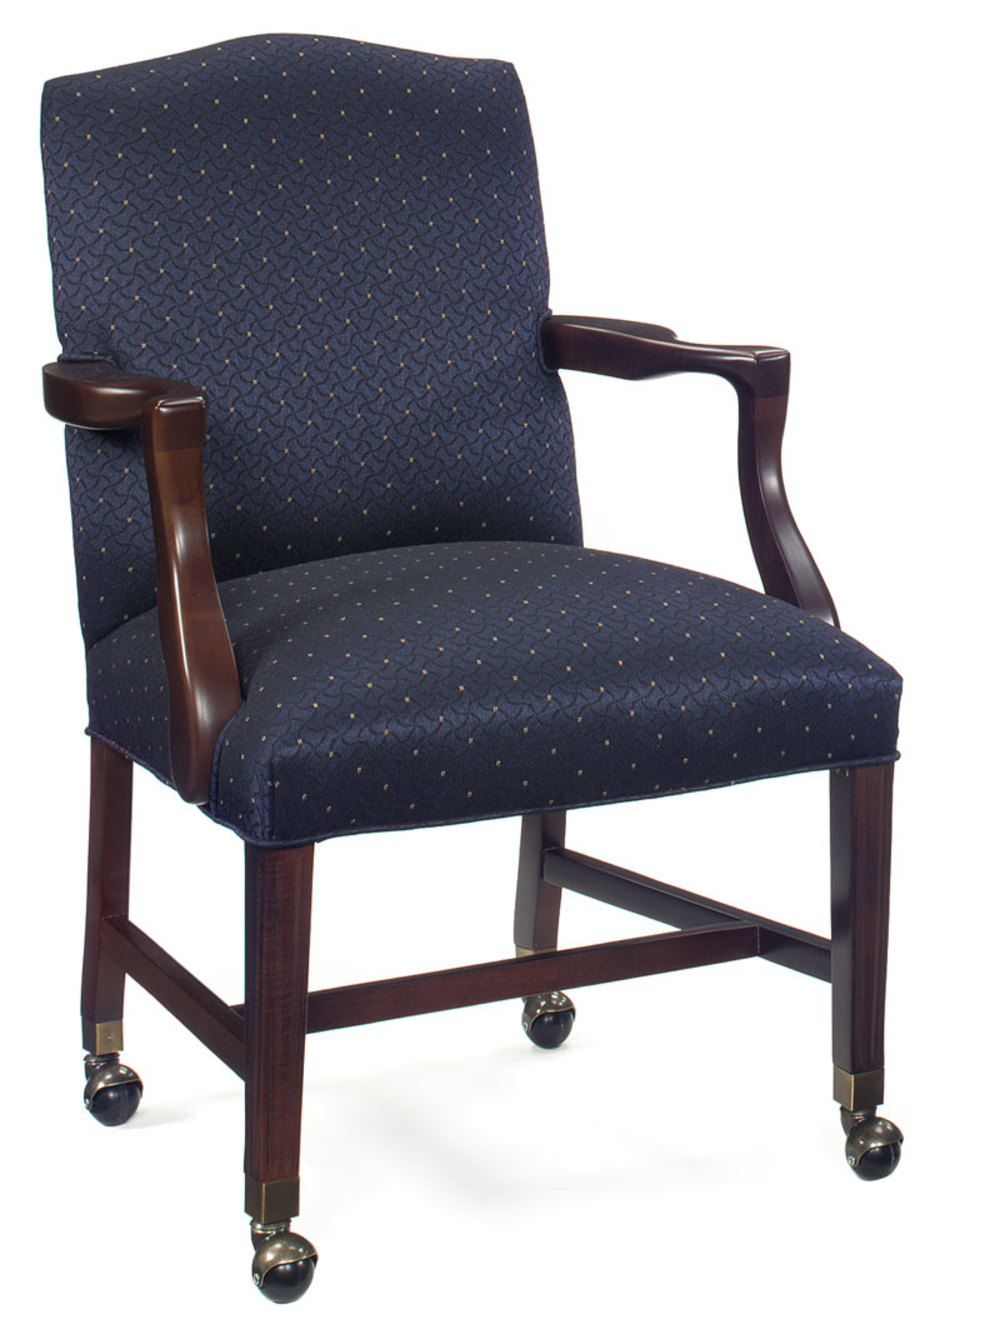 Parker Southern - Hamilton Castered Contract Chair